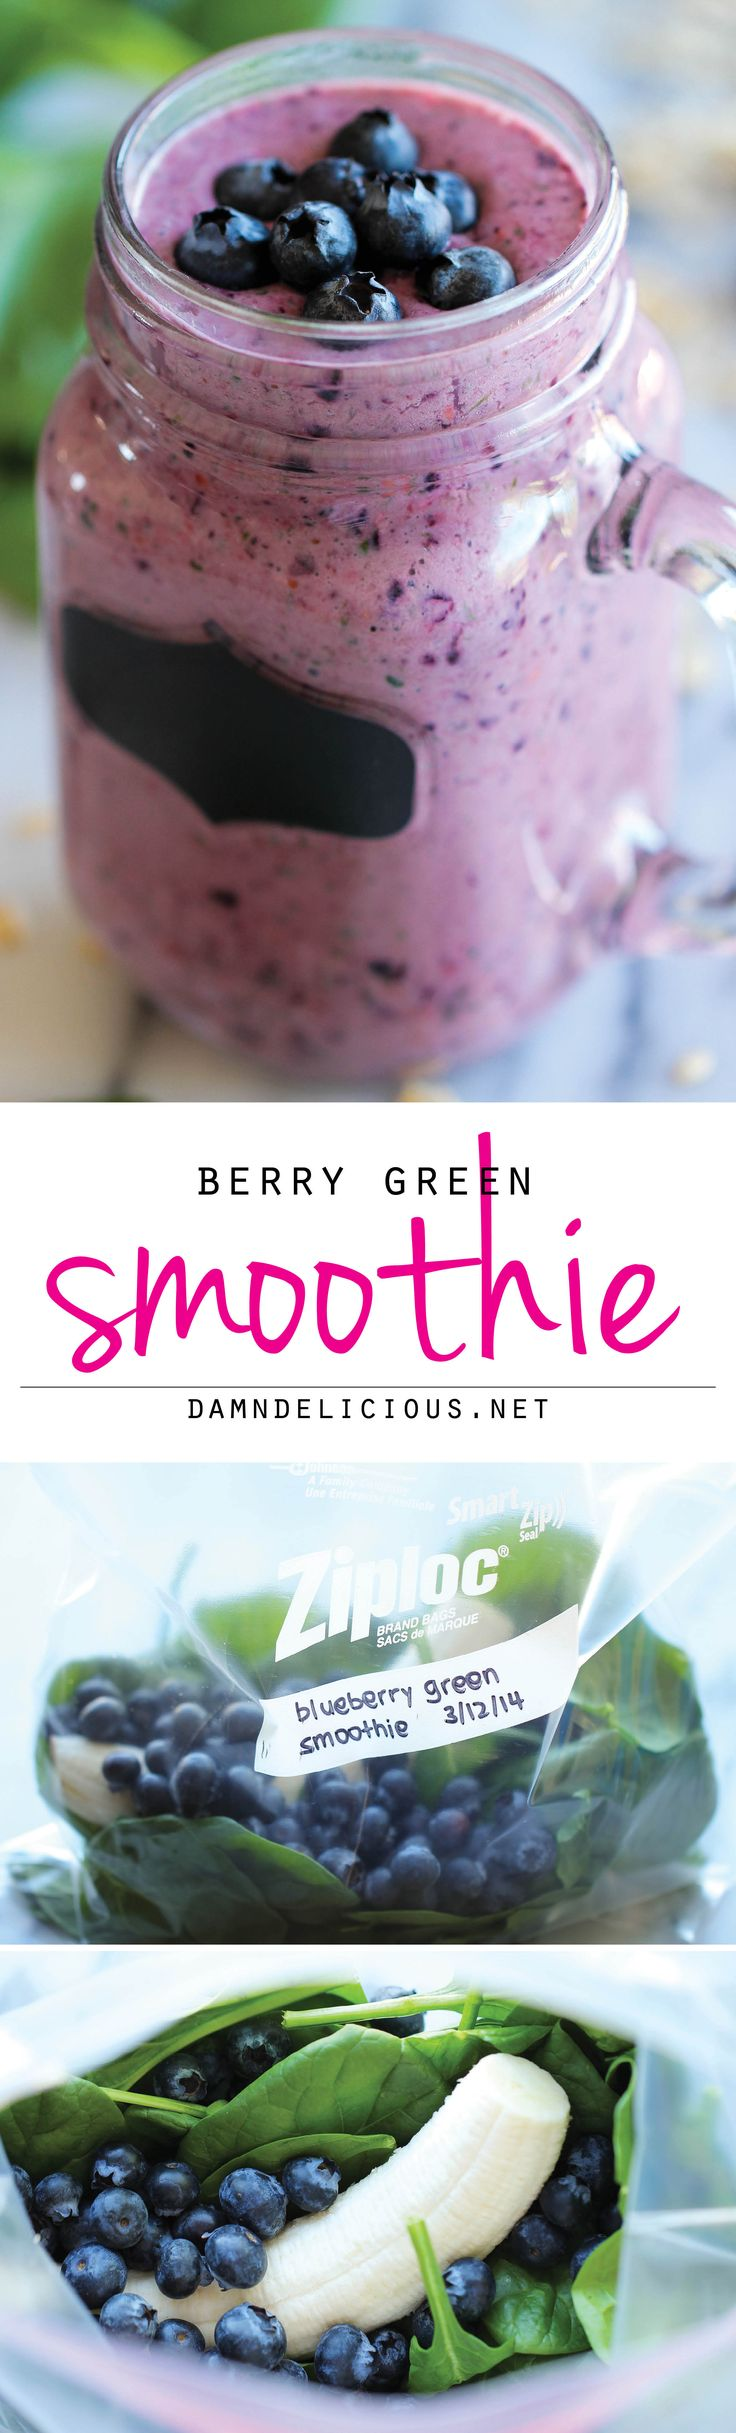 Berry Green Smoothie - Make-ahead freezer friendly smoothies that are healthy, nutritious and so refreshing for your mornings~ I use So Delicious Unsweetened Coconut Milk in place of dairy for a healthy dairy free breakfast or lunch smoothie ❤️